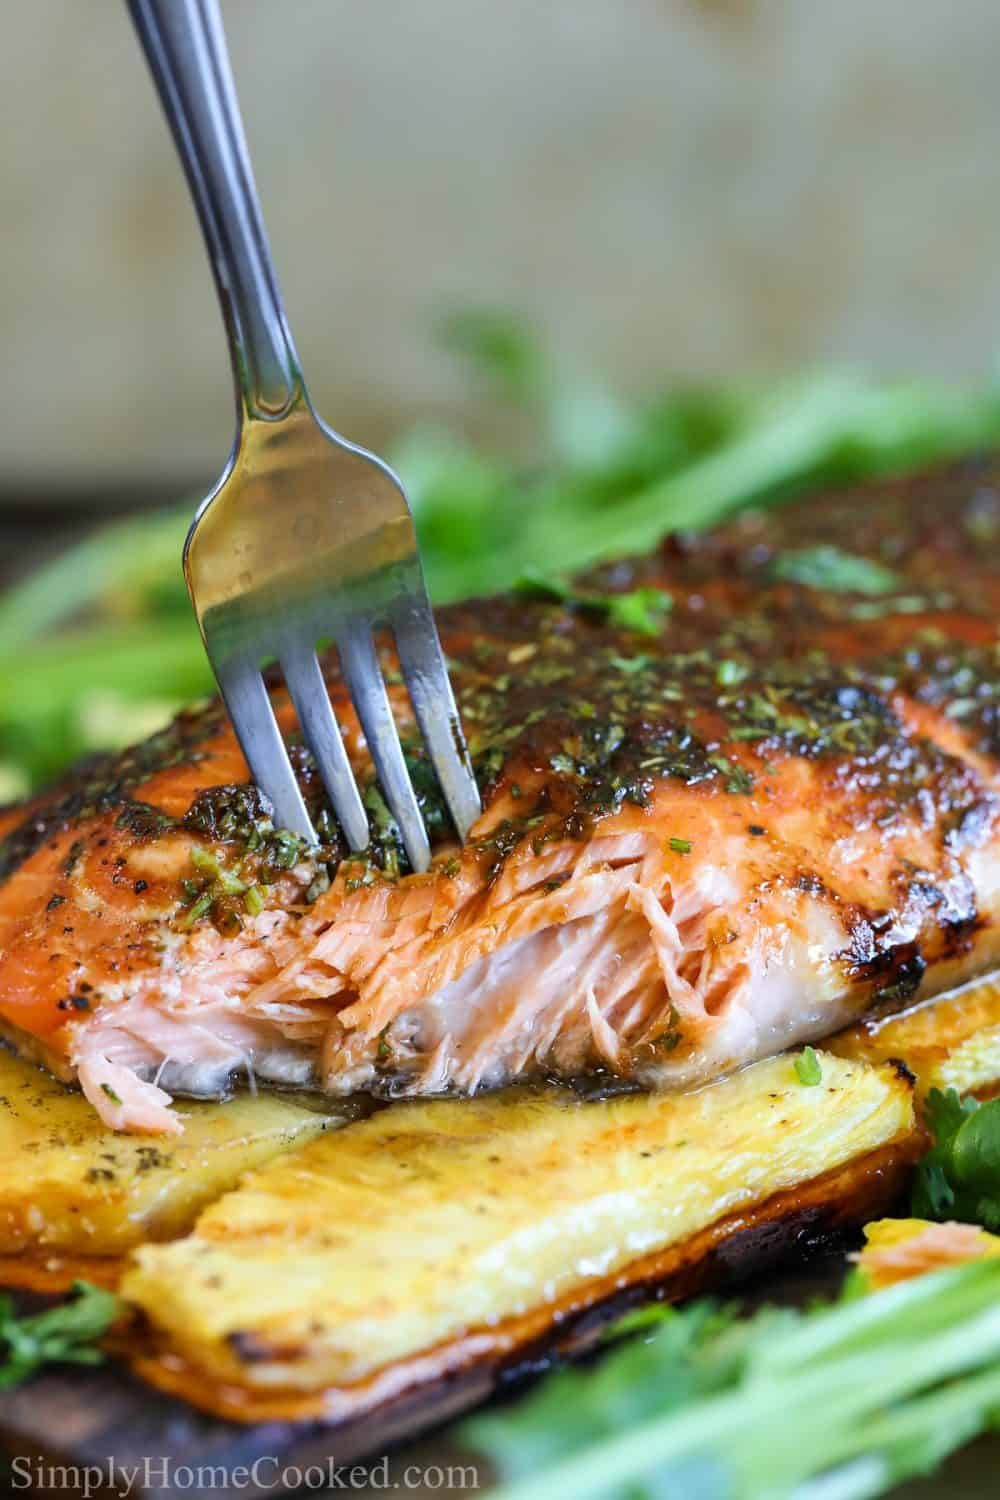 grilled salmon on a cedar plank with pineapples under and a fork piercing through the fish